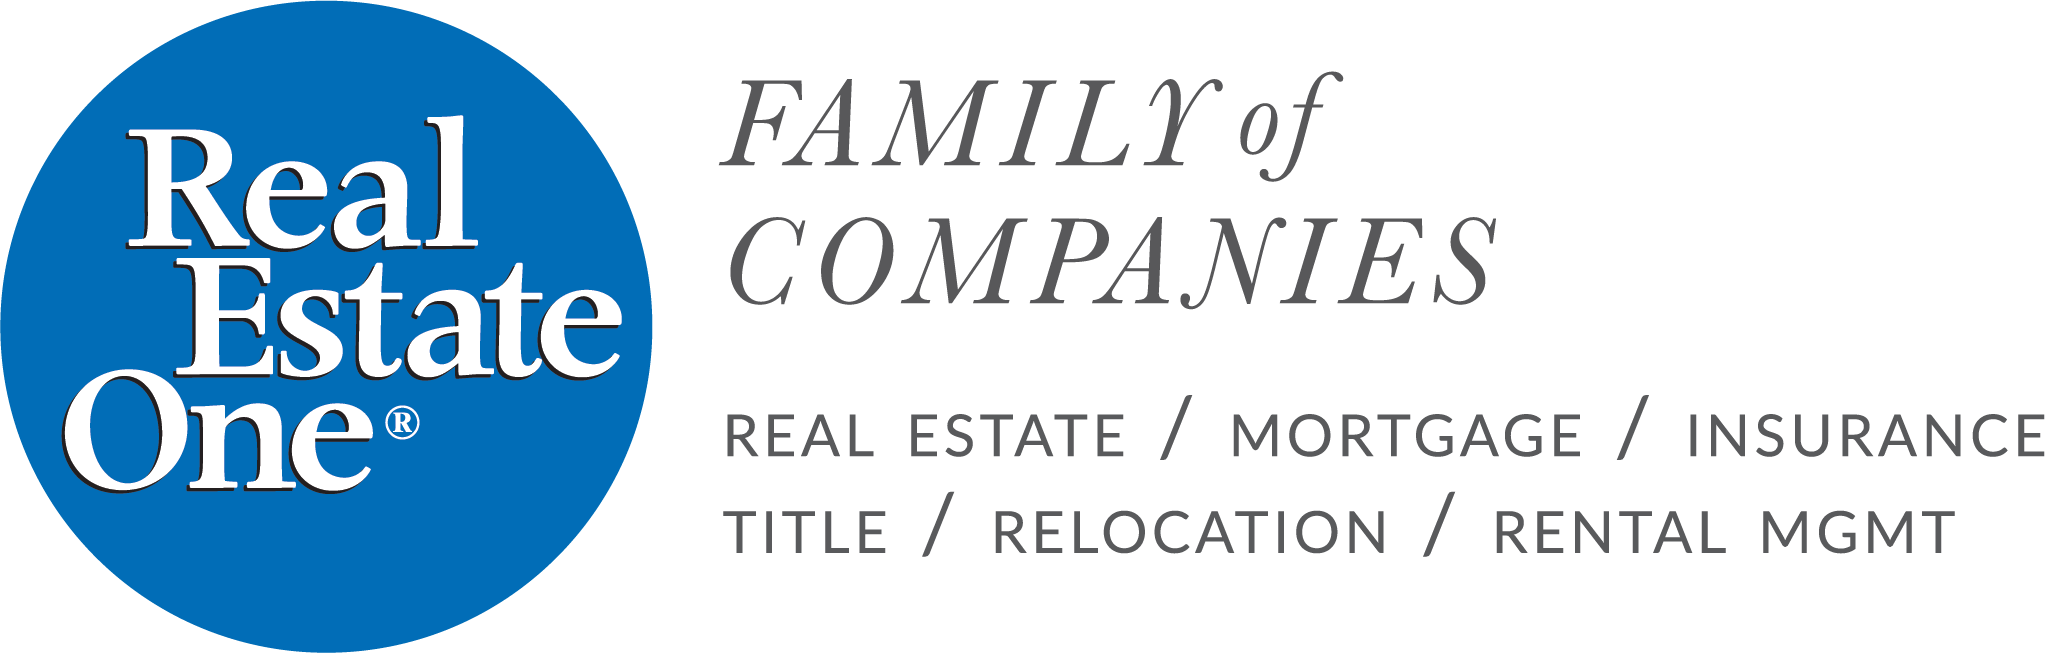 Real Estate One Company Logo